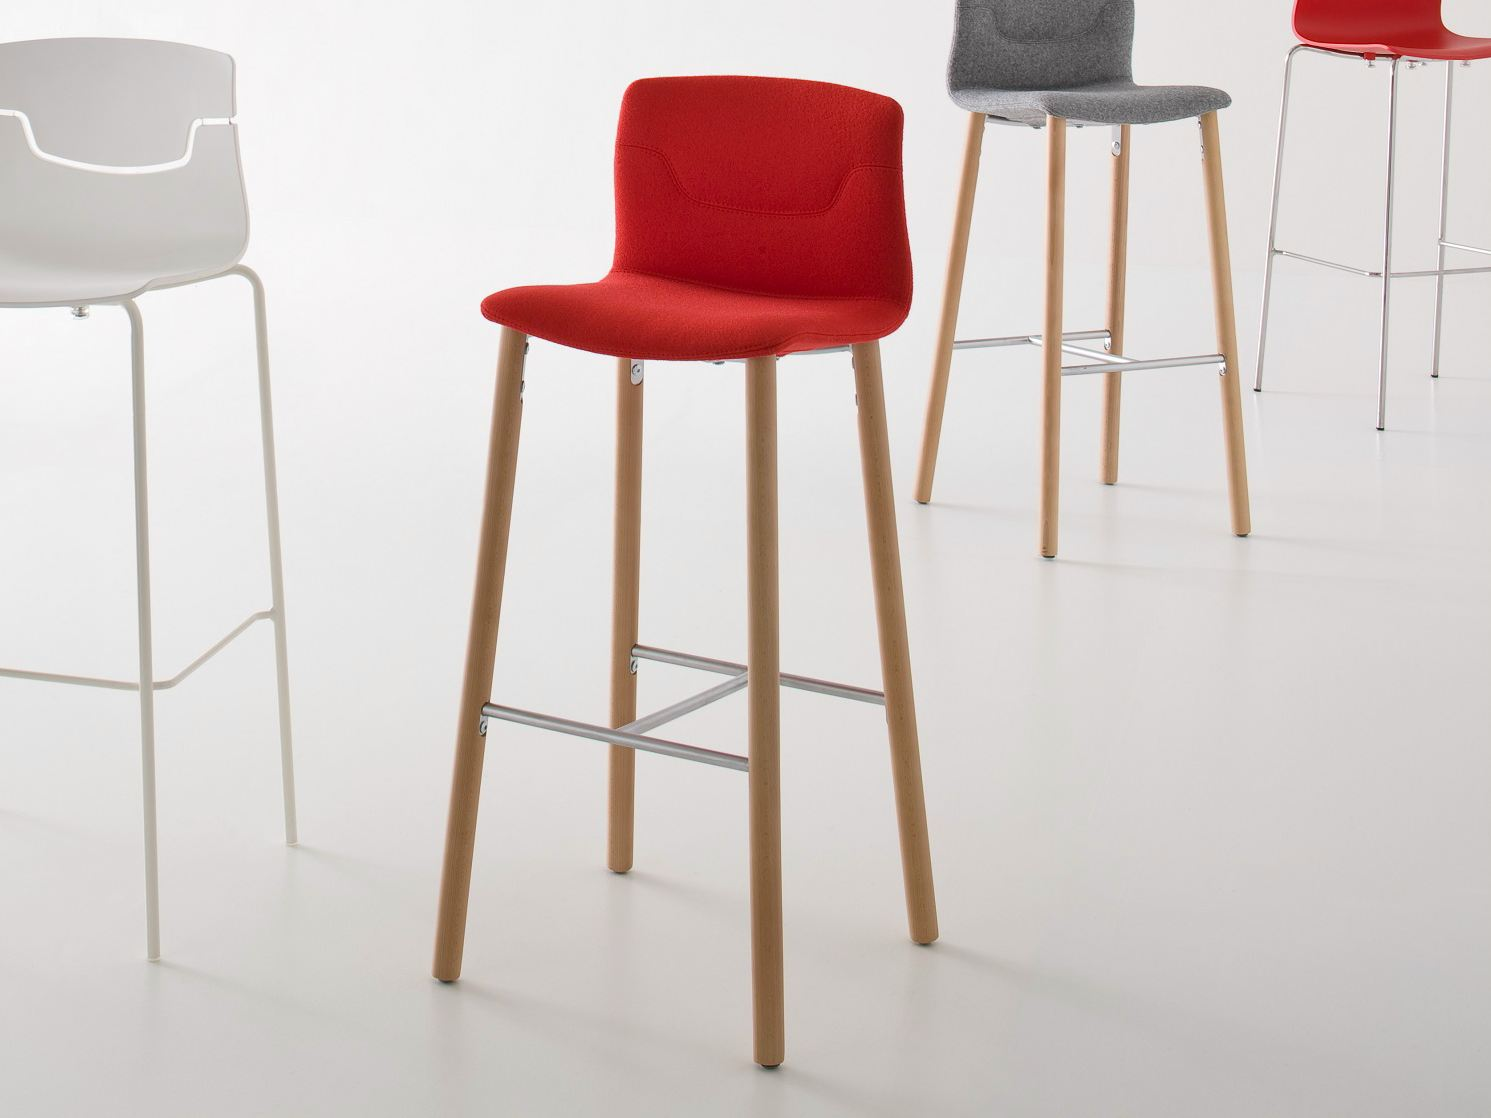 Slot silla alta by gaber dise o favaretto partners for Sillas altas